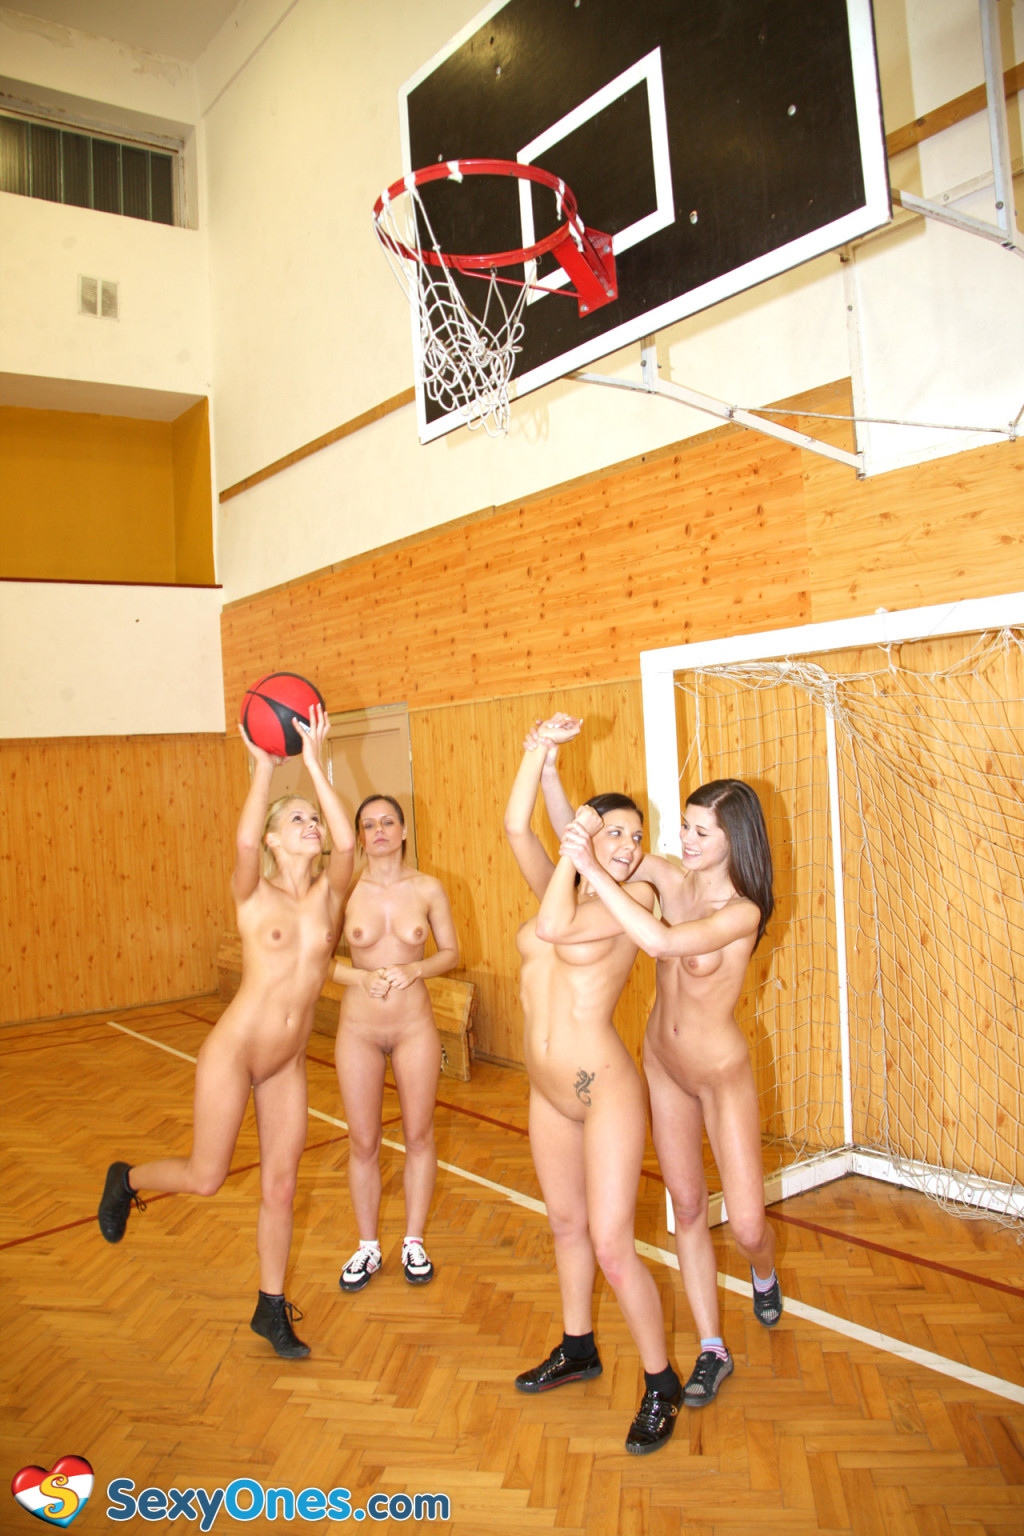 Schoolgirls playing basketball as mother gave birth